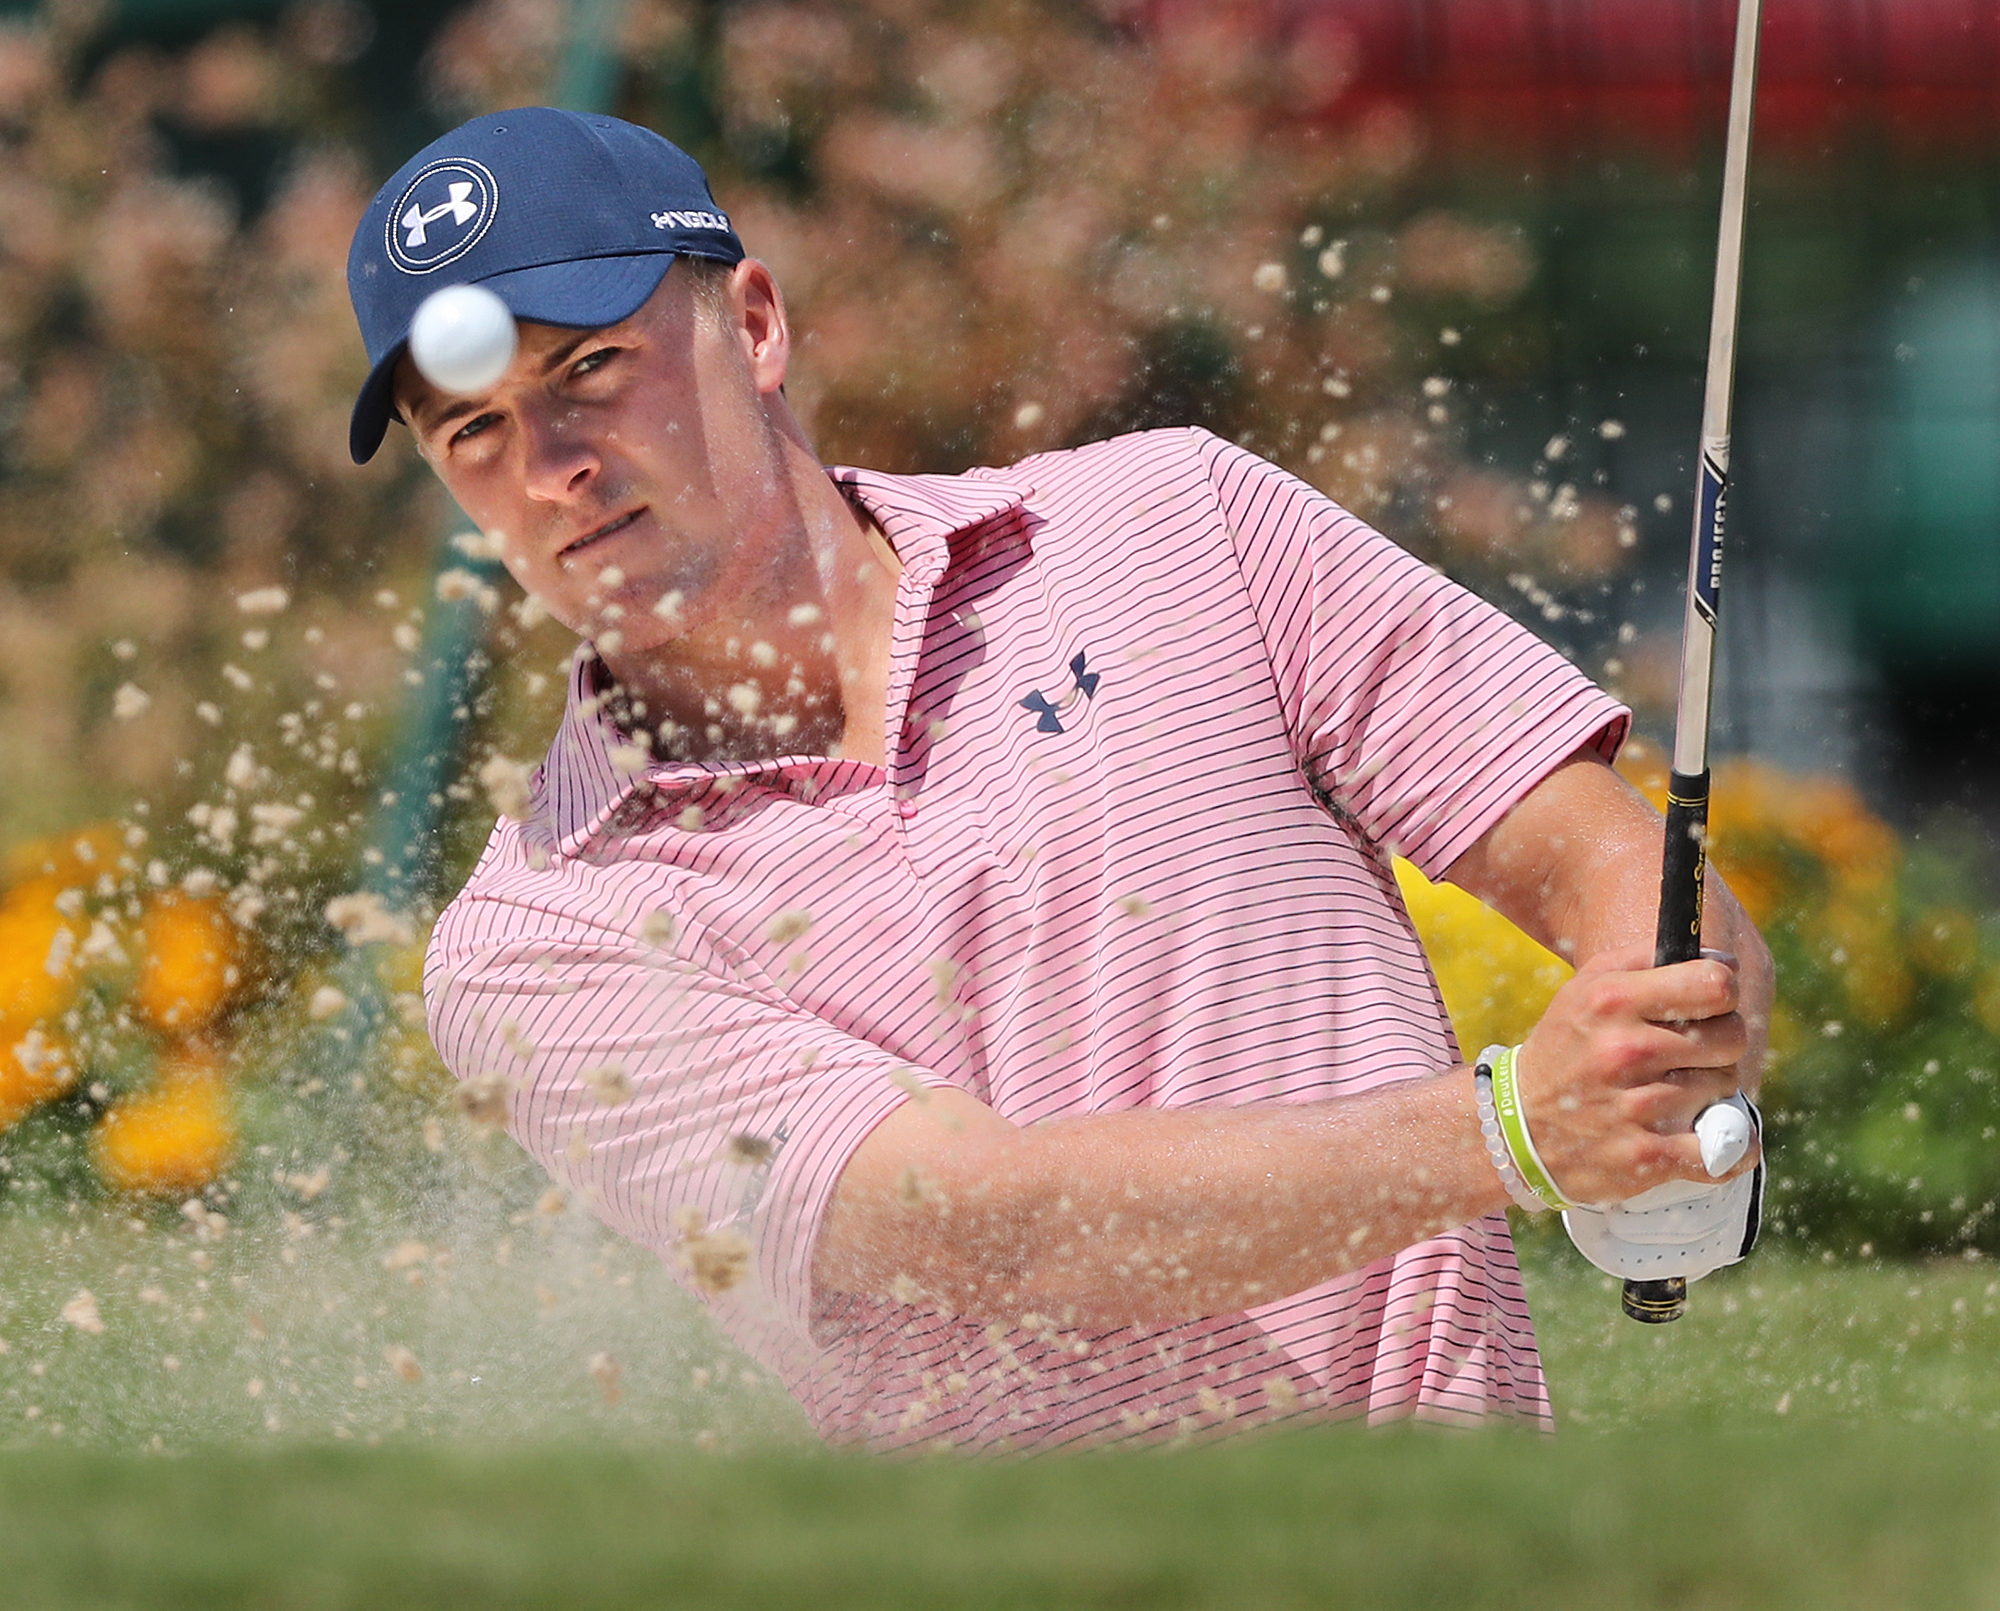 Tour Championship golf tournament defending champion Jordan Spieth hits sand shots to the practice green while preparing to defend his title at East Lake Golf Club in Atlanta,  on Tuesday, Sept. 20, 2016, (Curtis Compton/Atlanta Journal-Constitution via A